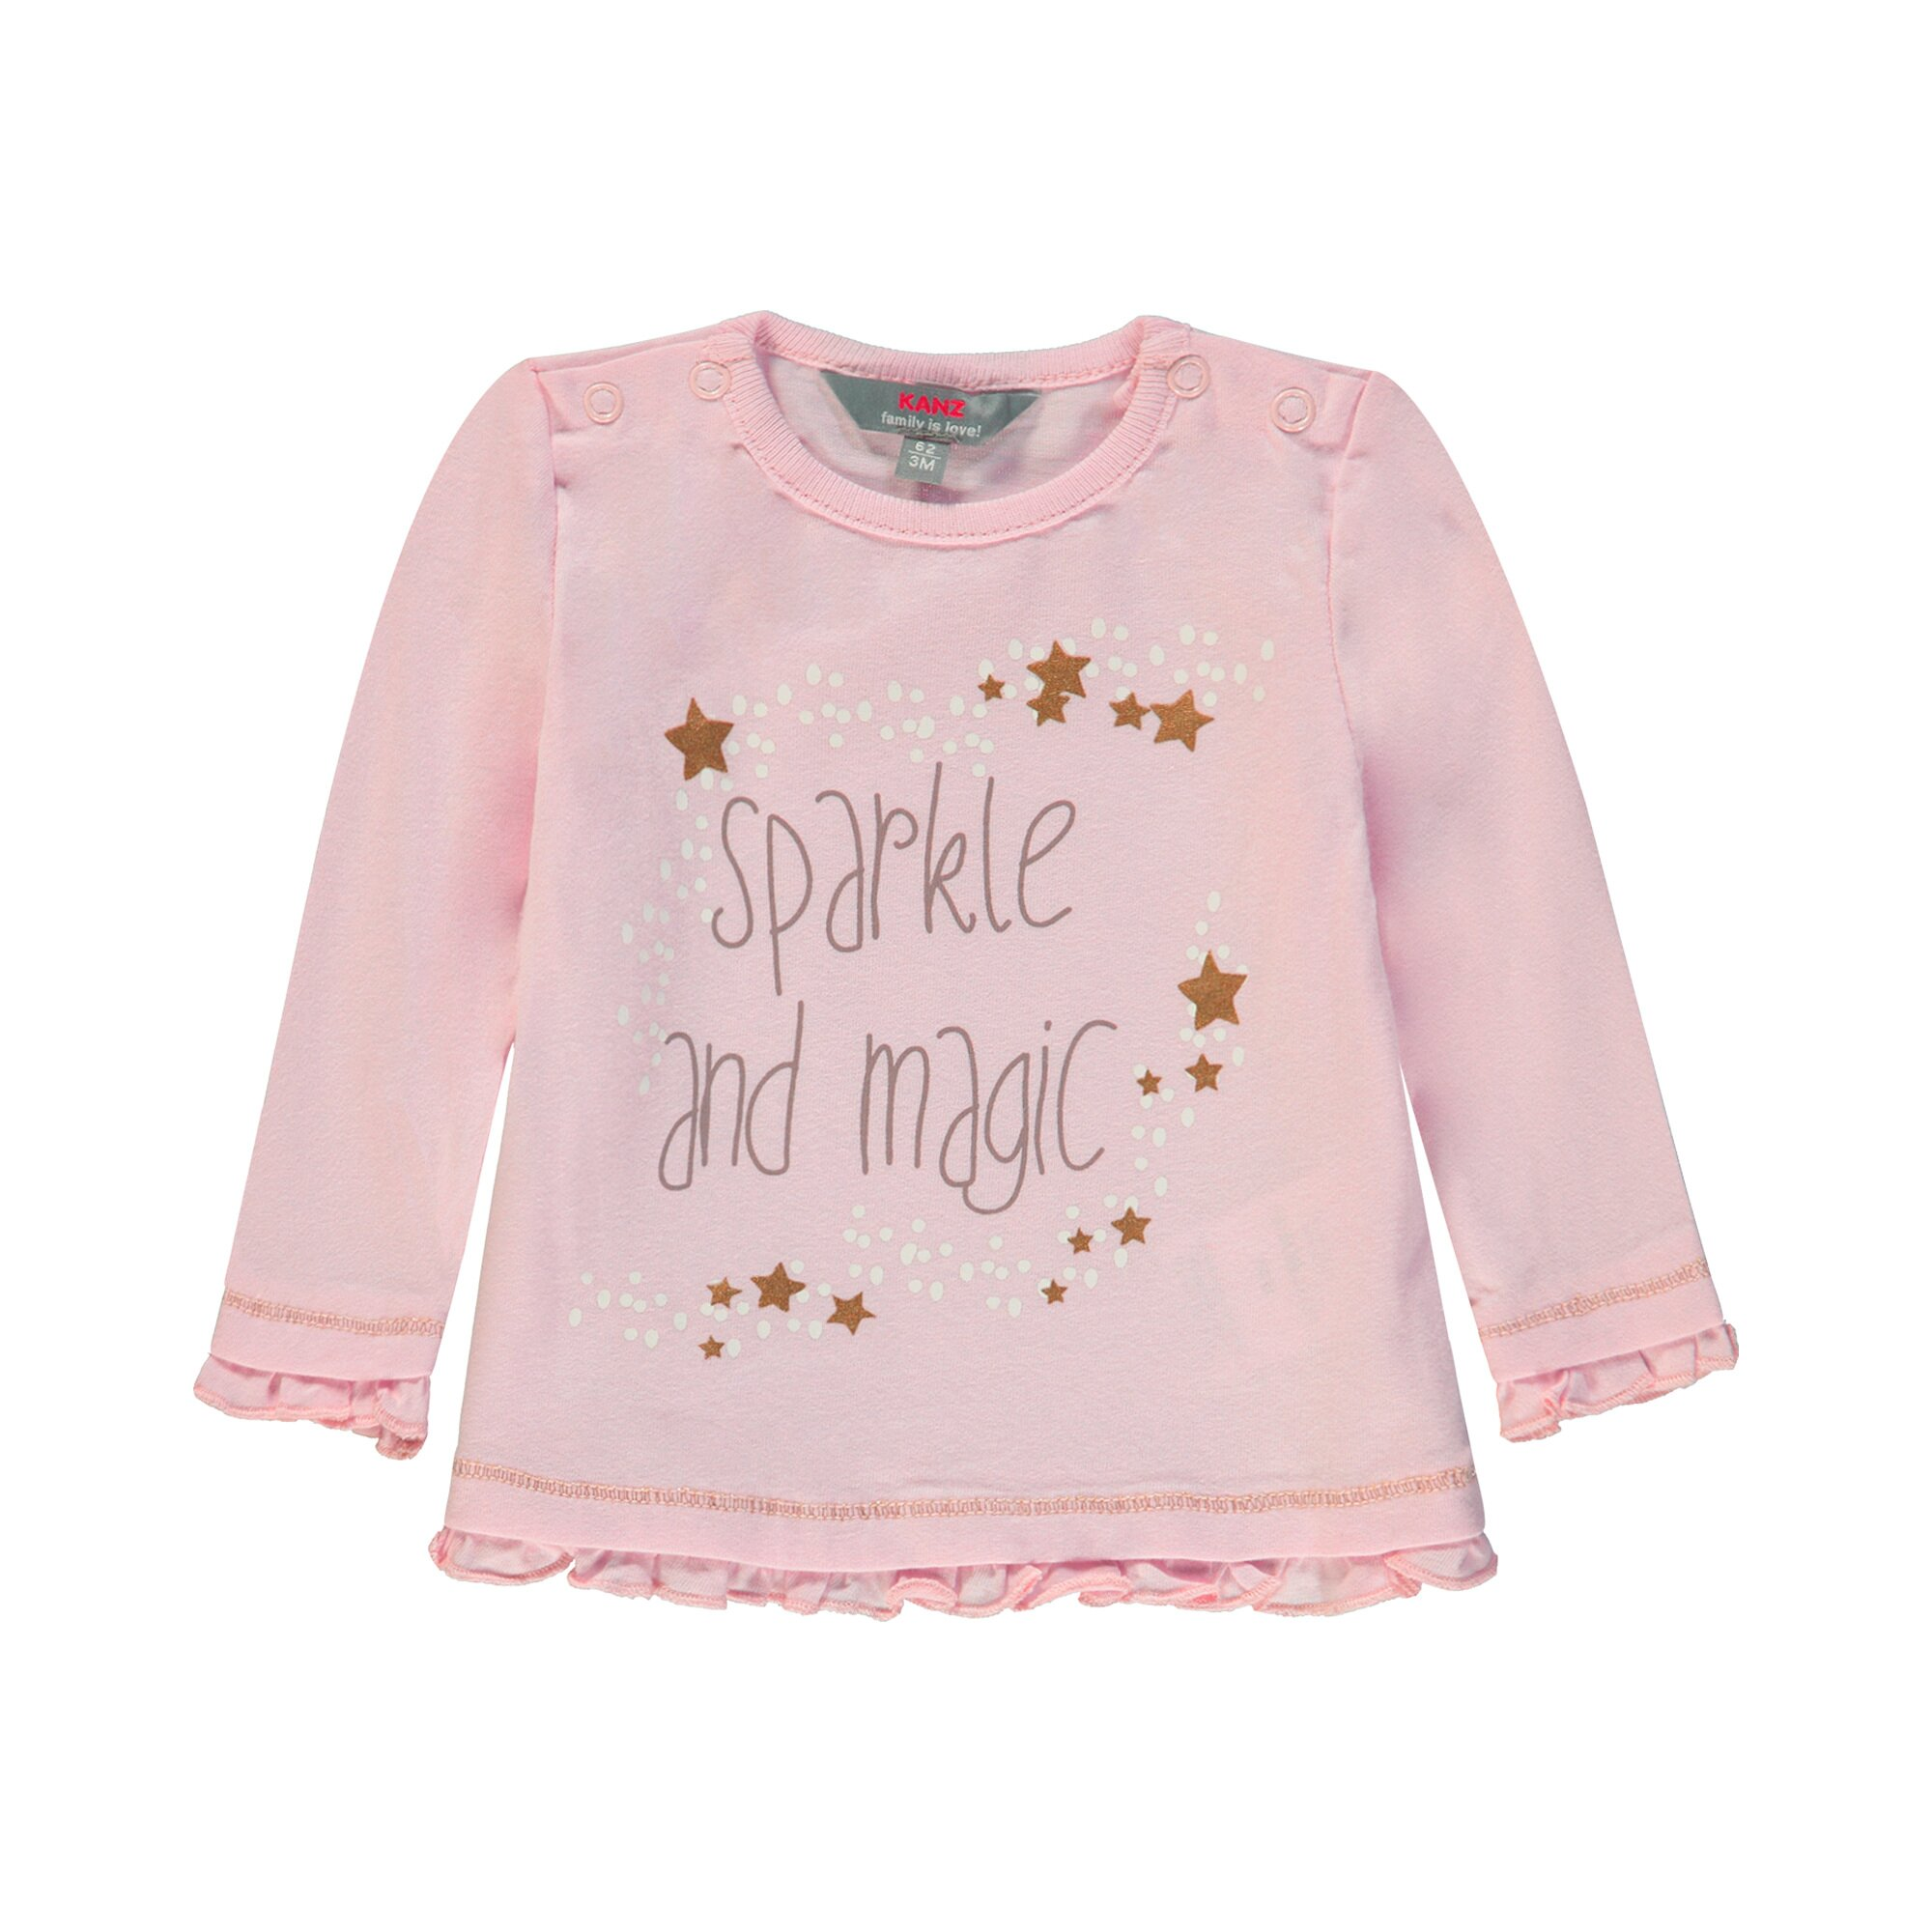 Kanz Shirt langarm Sparkle and magic